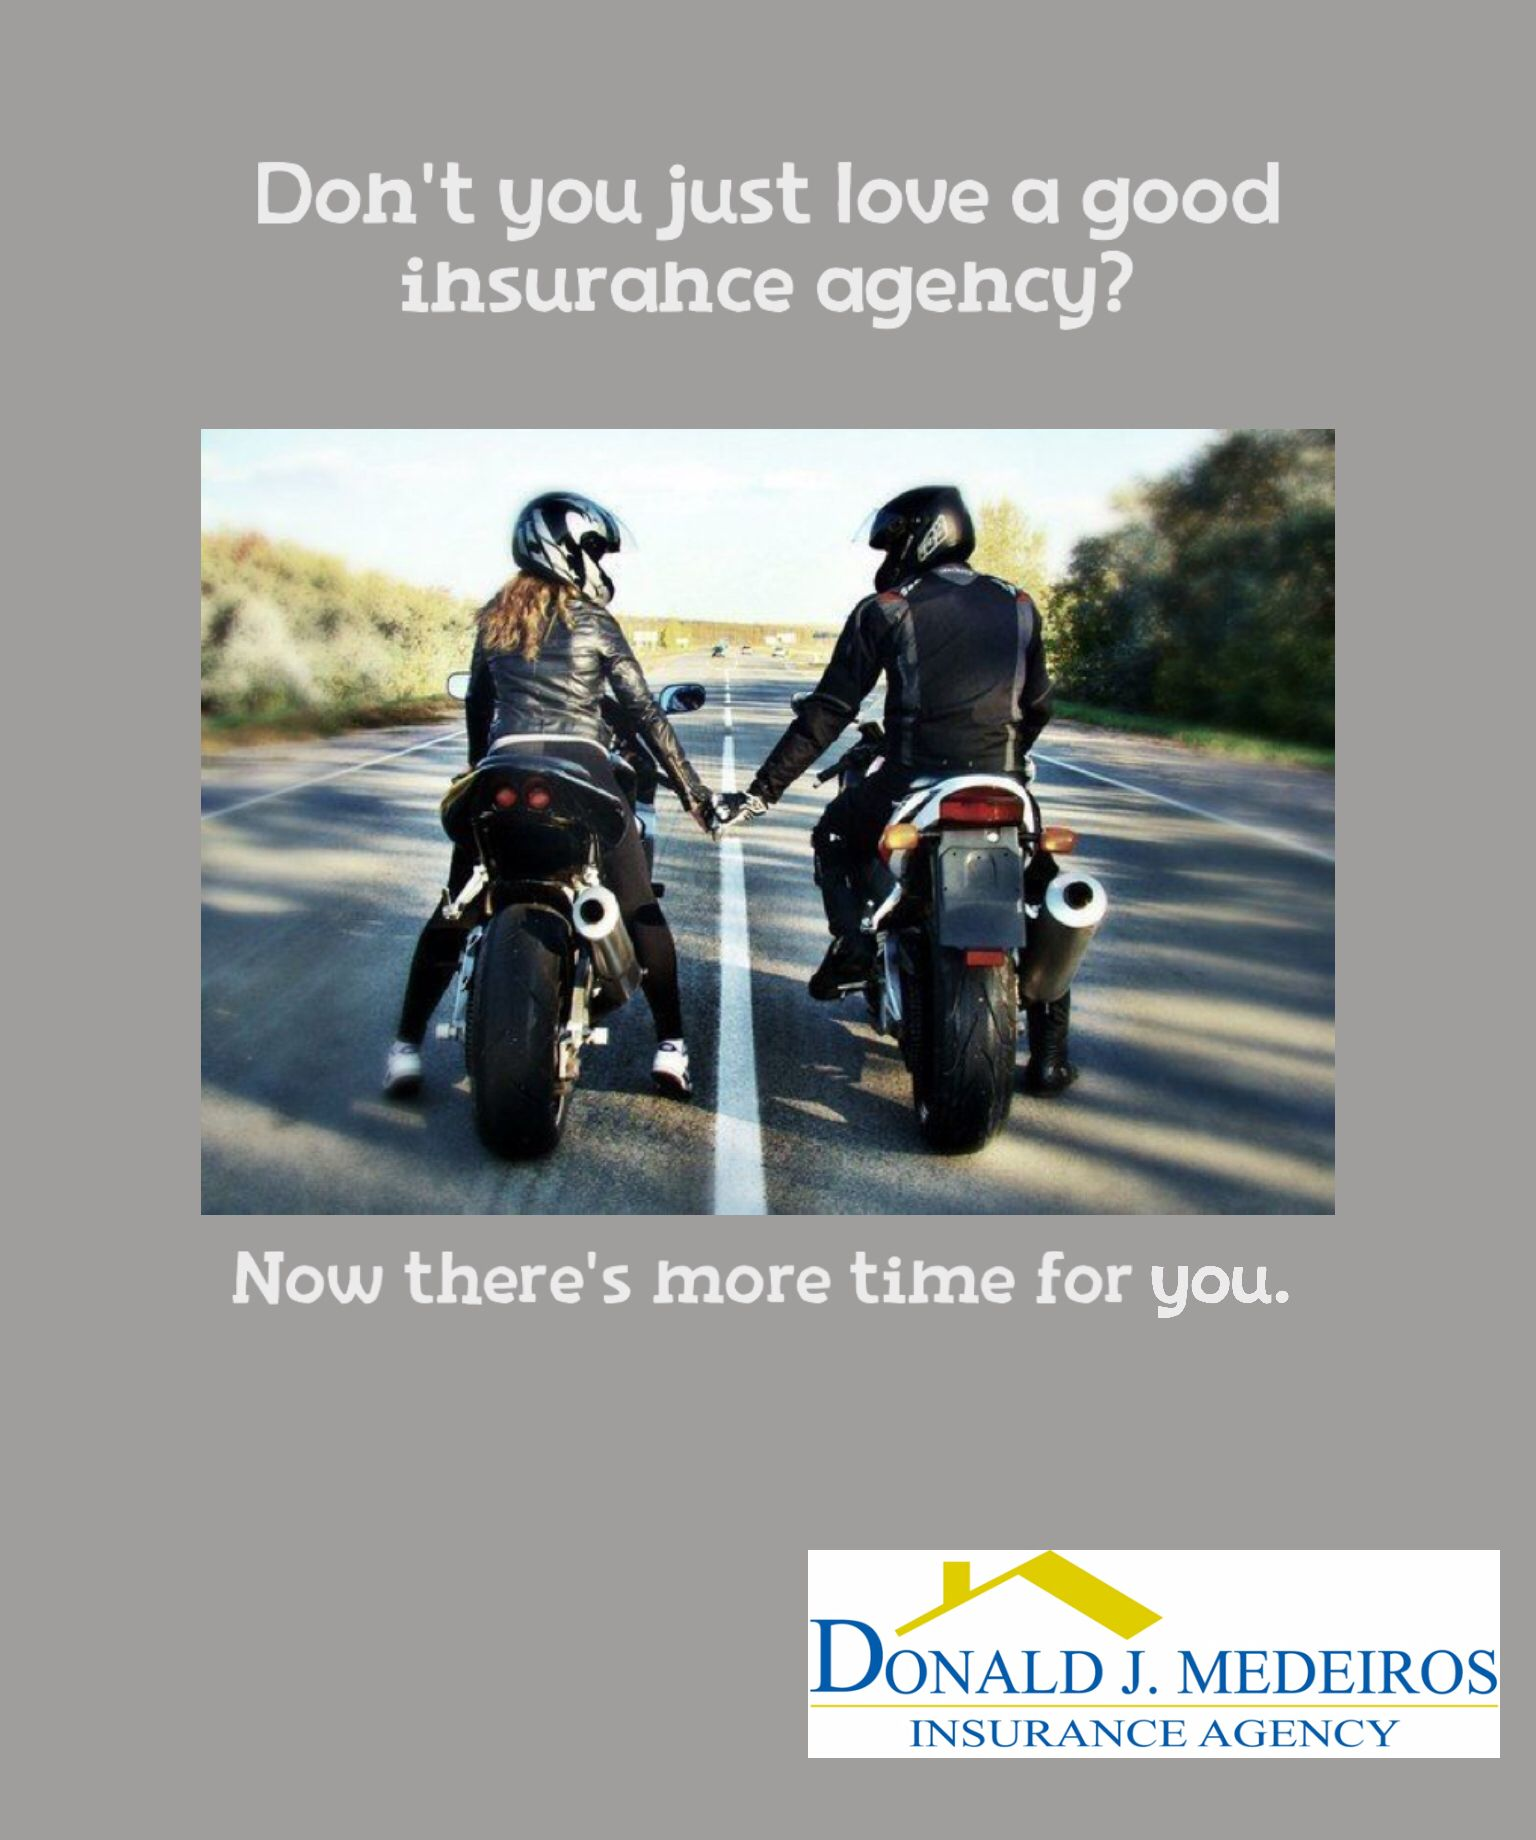 Motorcycle Insurance A Good Agency Will Leave You With More Time